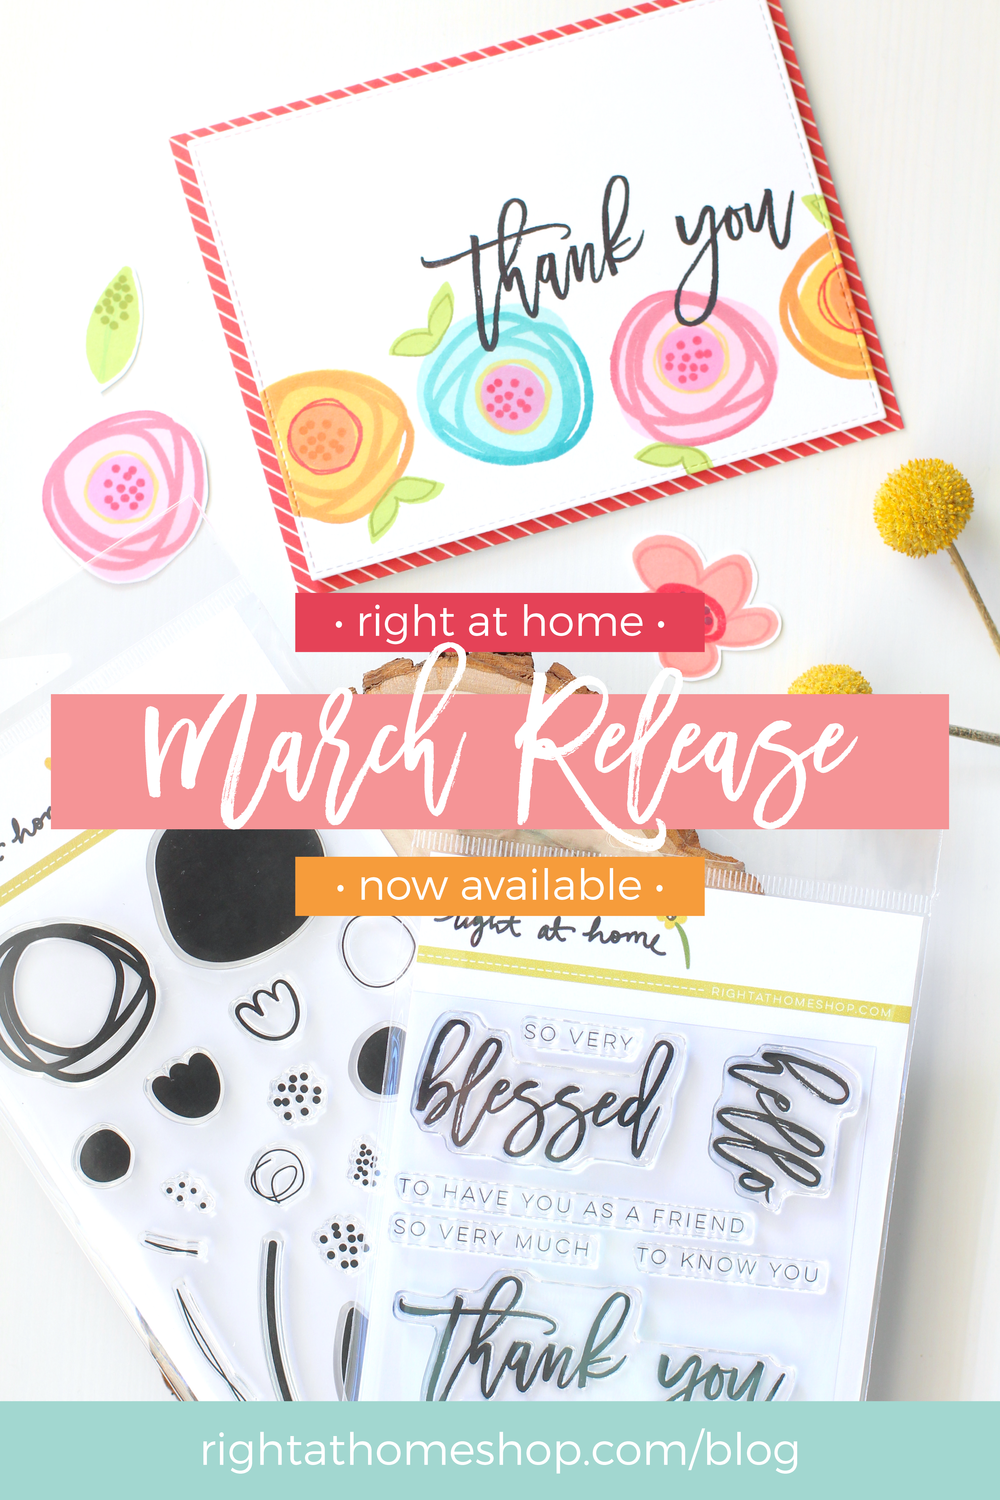 Right at Home Stamps March Release Blog Hop // rightathomeshop.com/blog